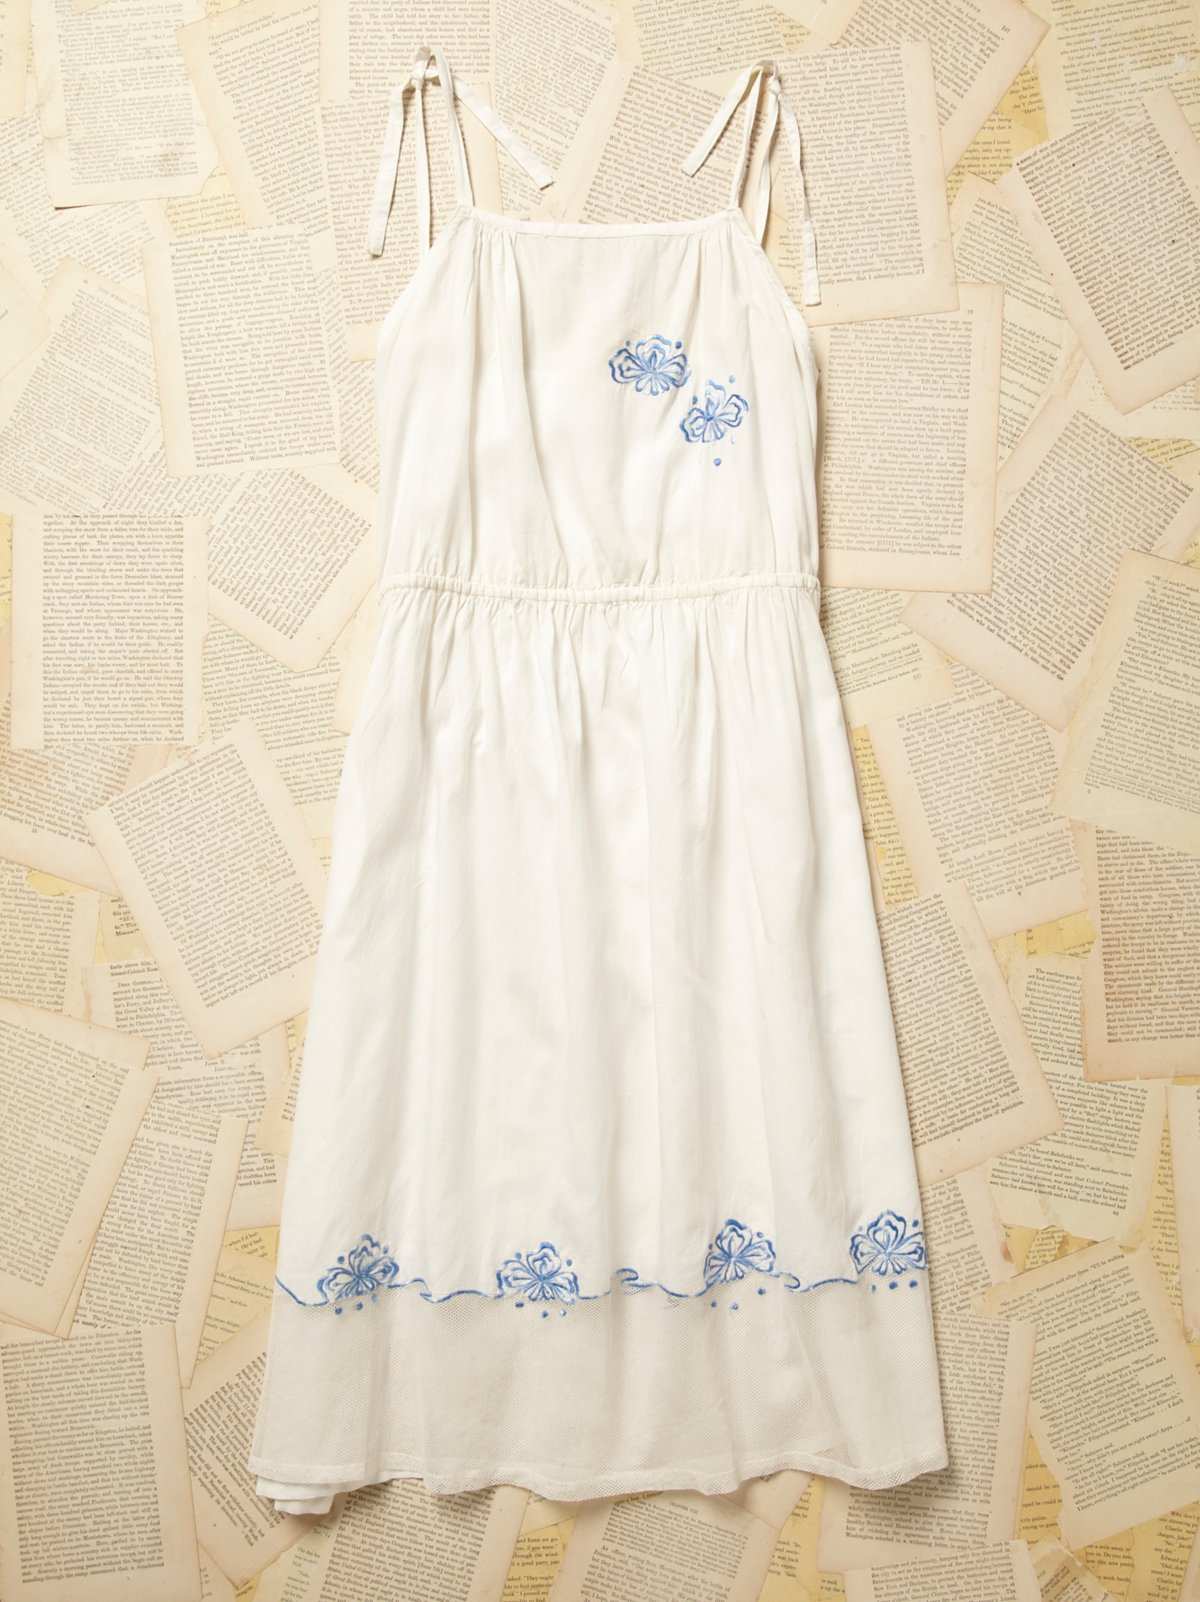 Vintage 1950s Cotton Dress with Blue Embroidery